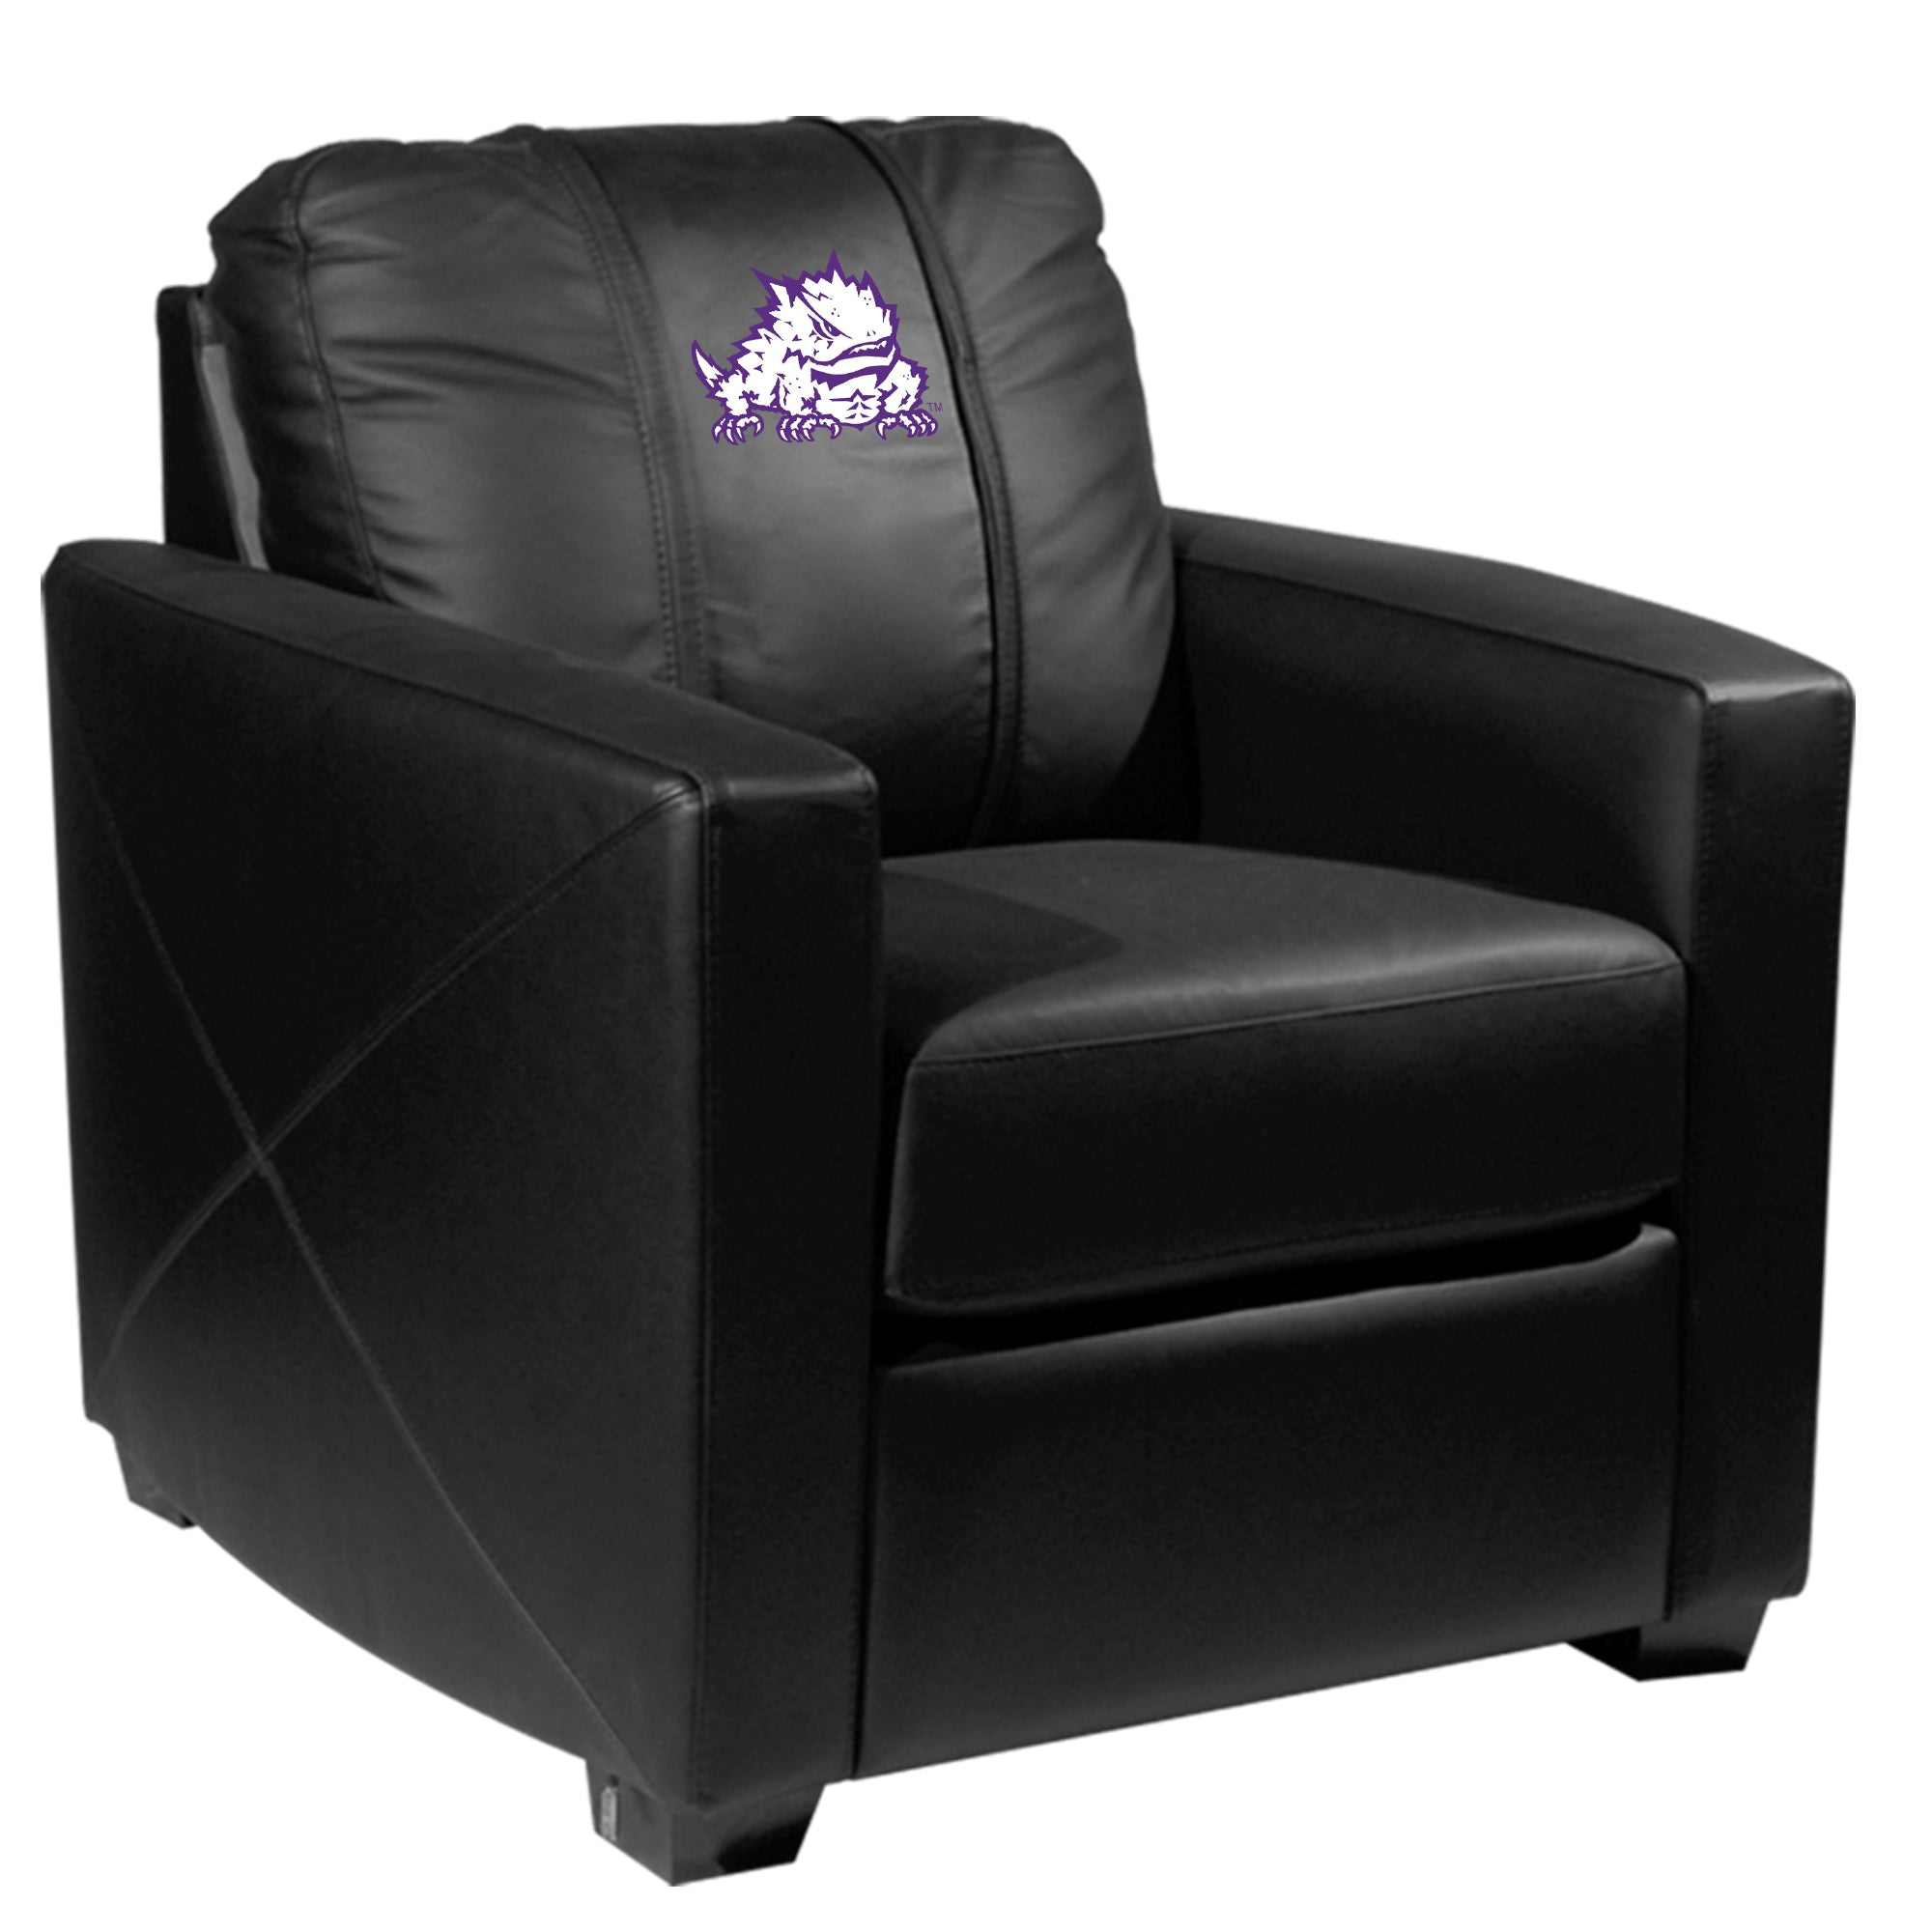 Silver Club Chair with TCU Horned Frogs Secondary